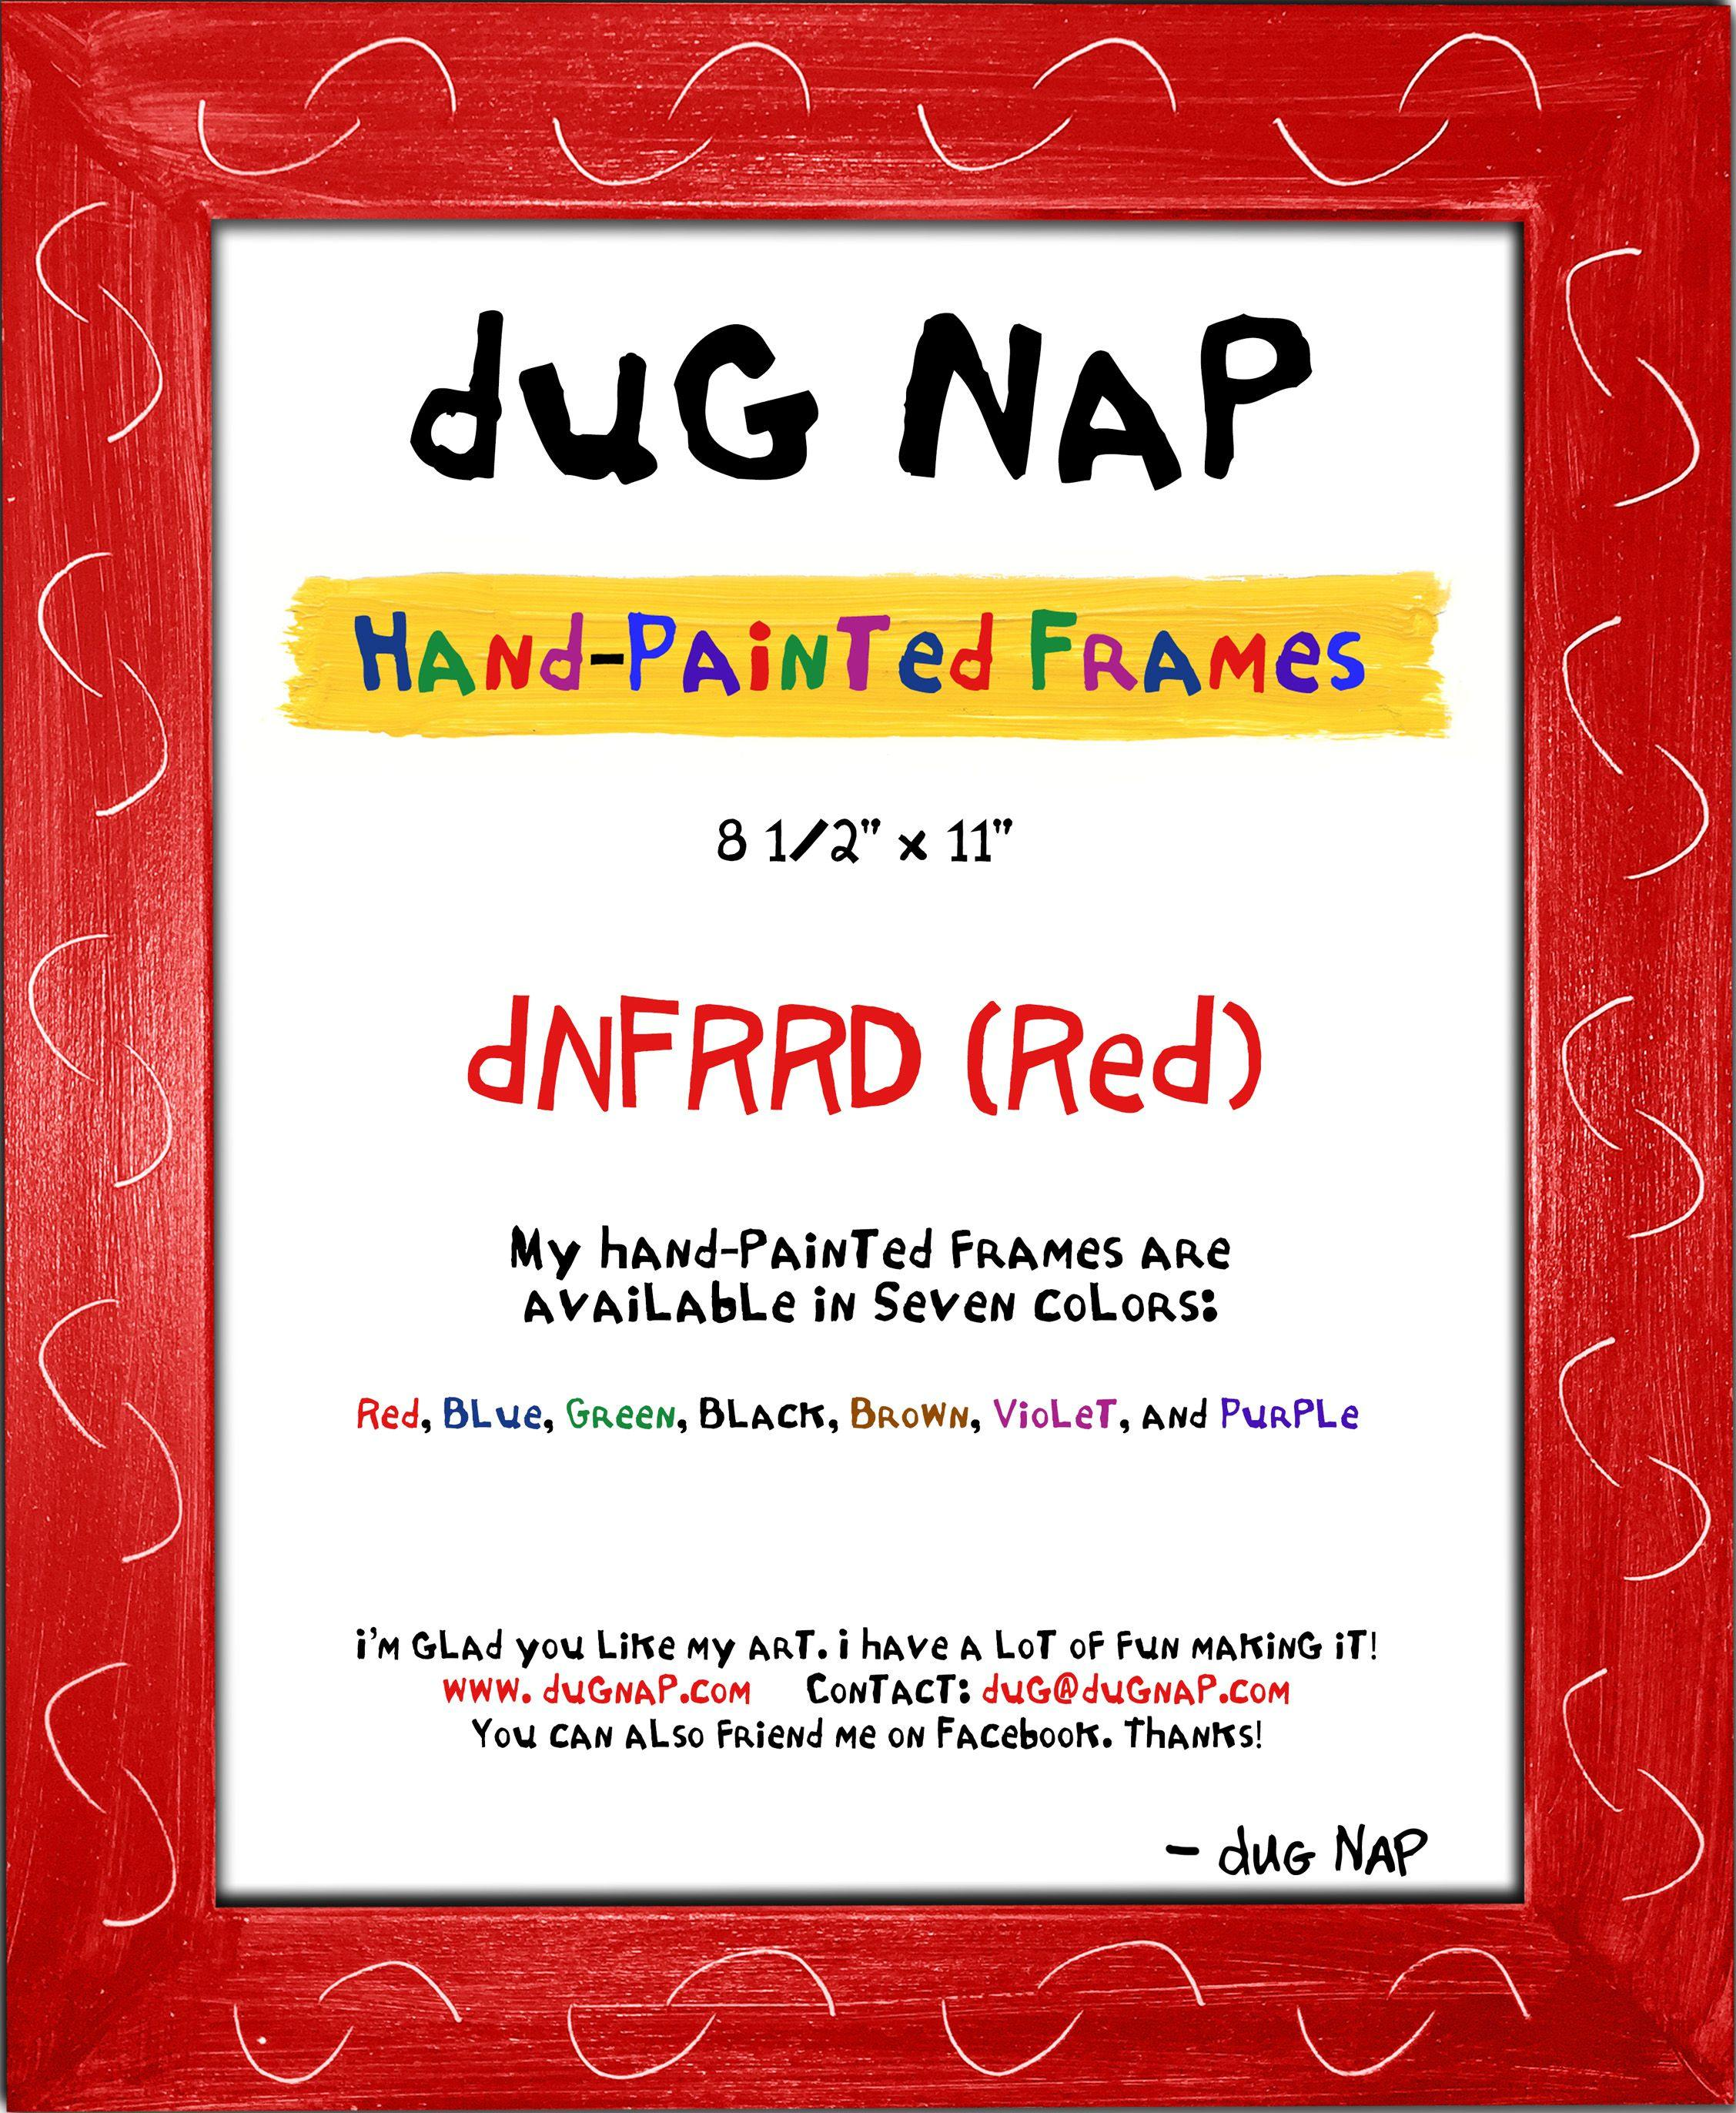 Hand-Painted 8.5 x 11 Frame - Red - dug Nap Art